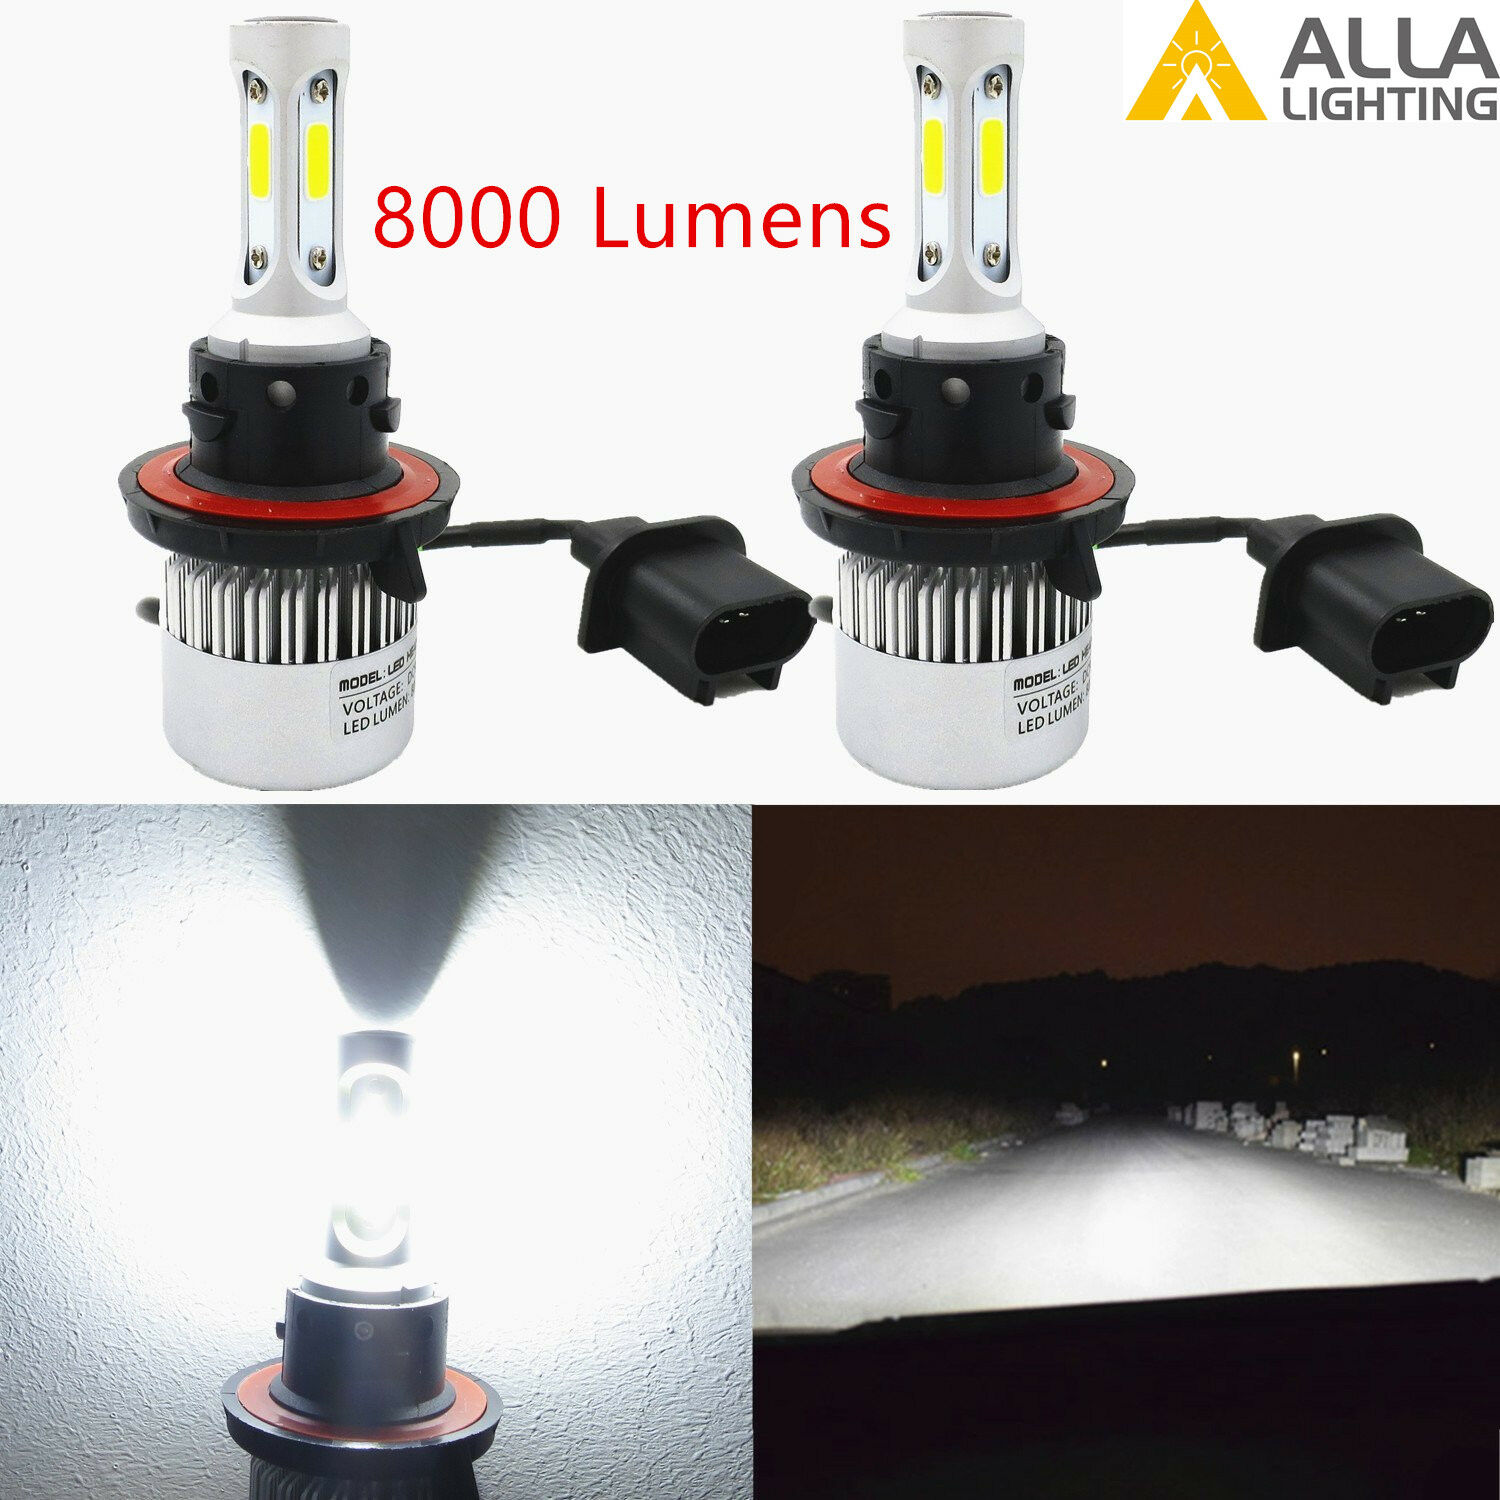 Alla Lighting X3 LED H13 Headlight High & Low Beam Light Bulbs Lamps Xenon White